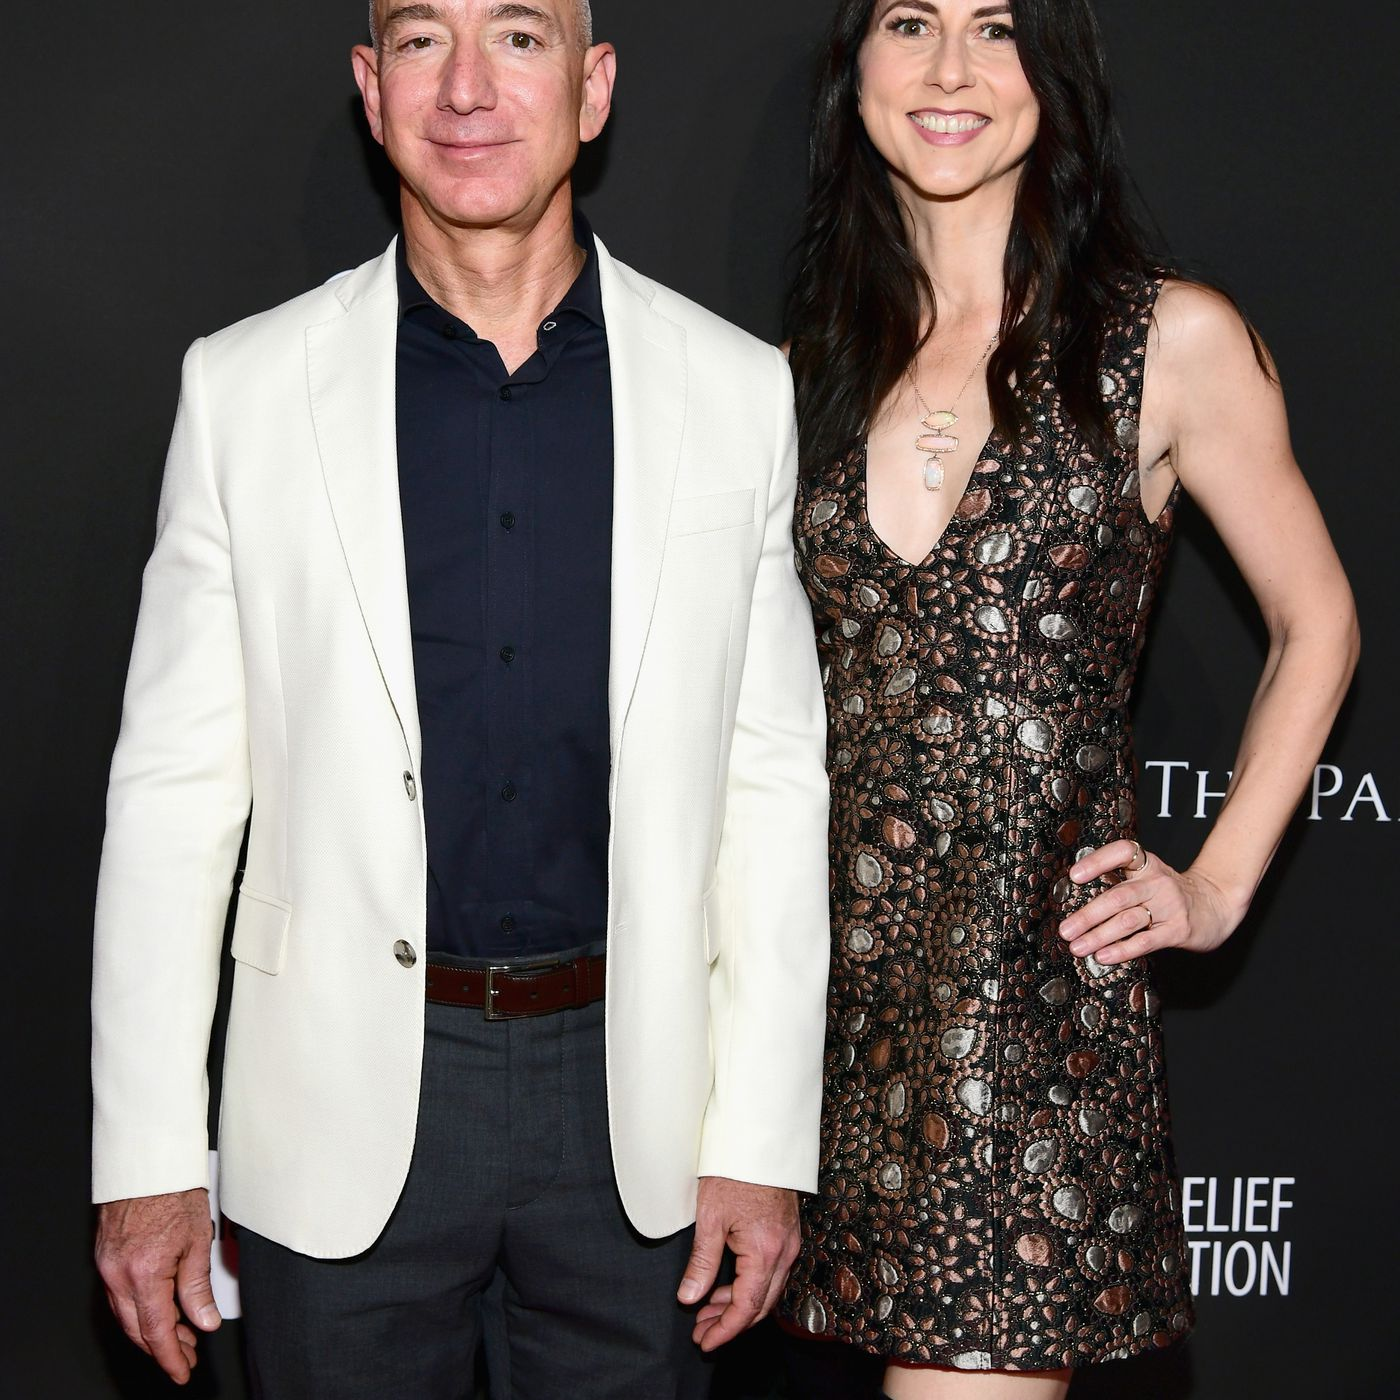 MacKenzie Bezos, with $35B, is now the world's third-wealthiest